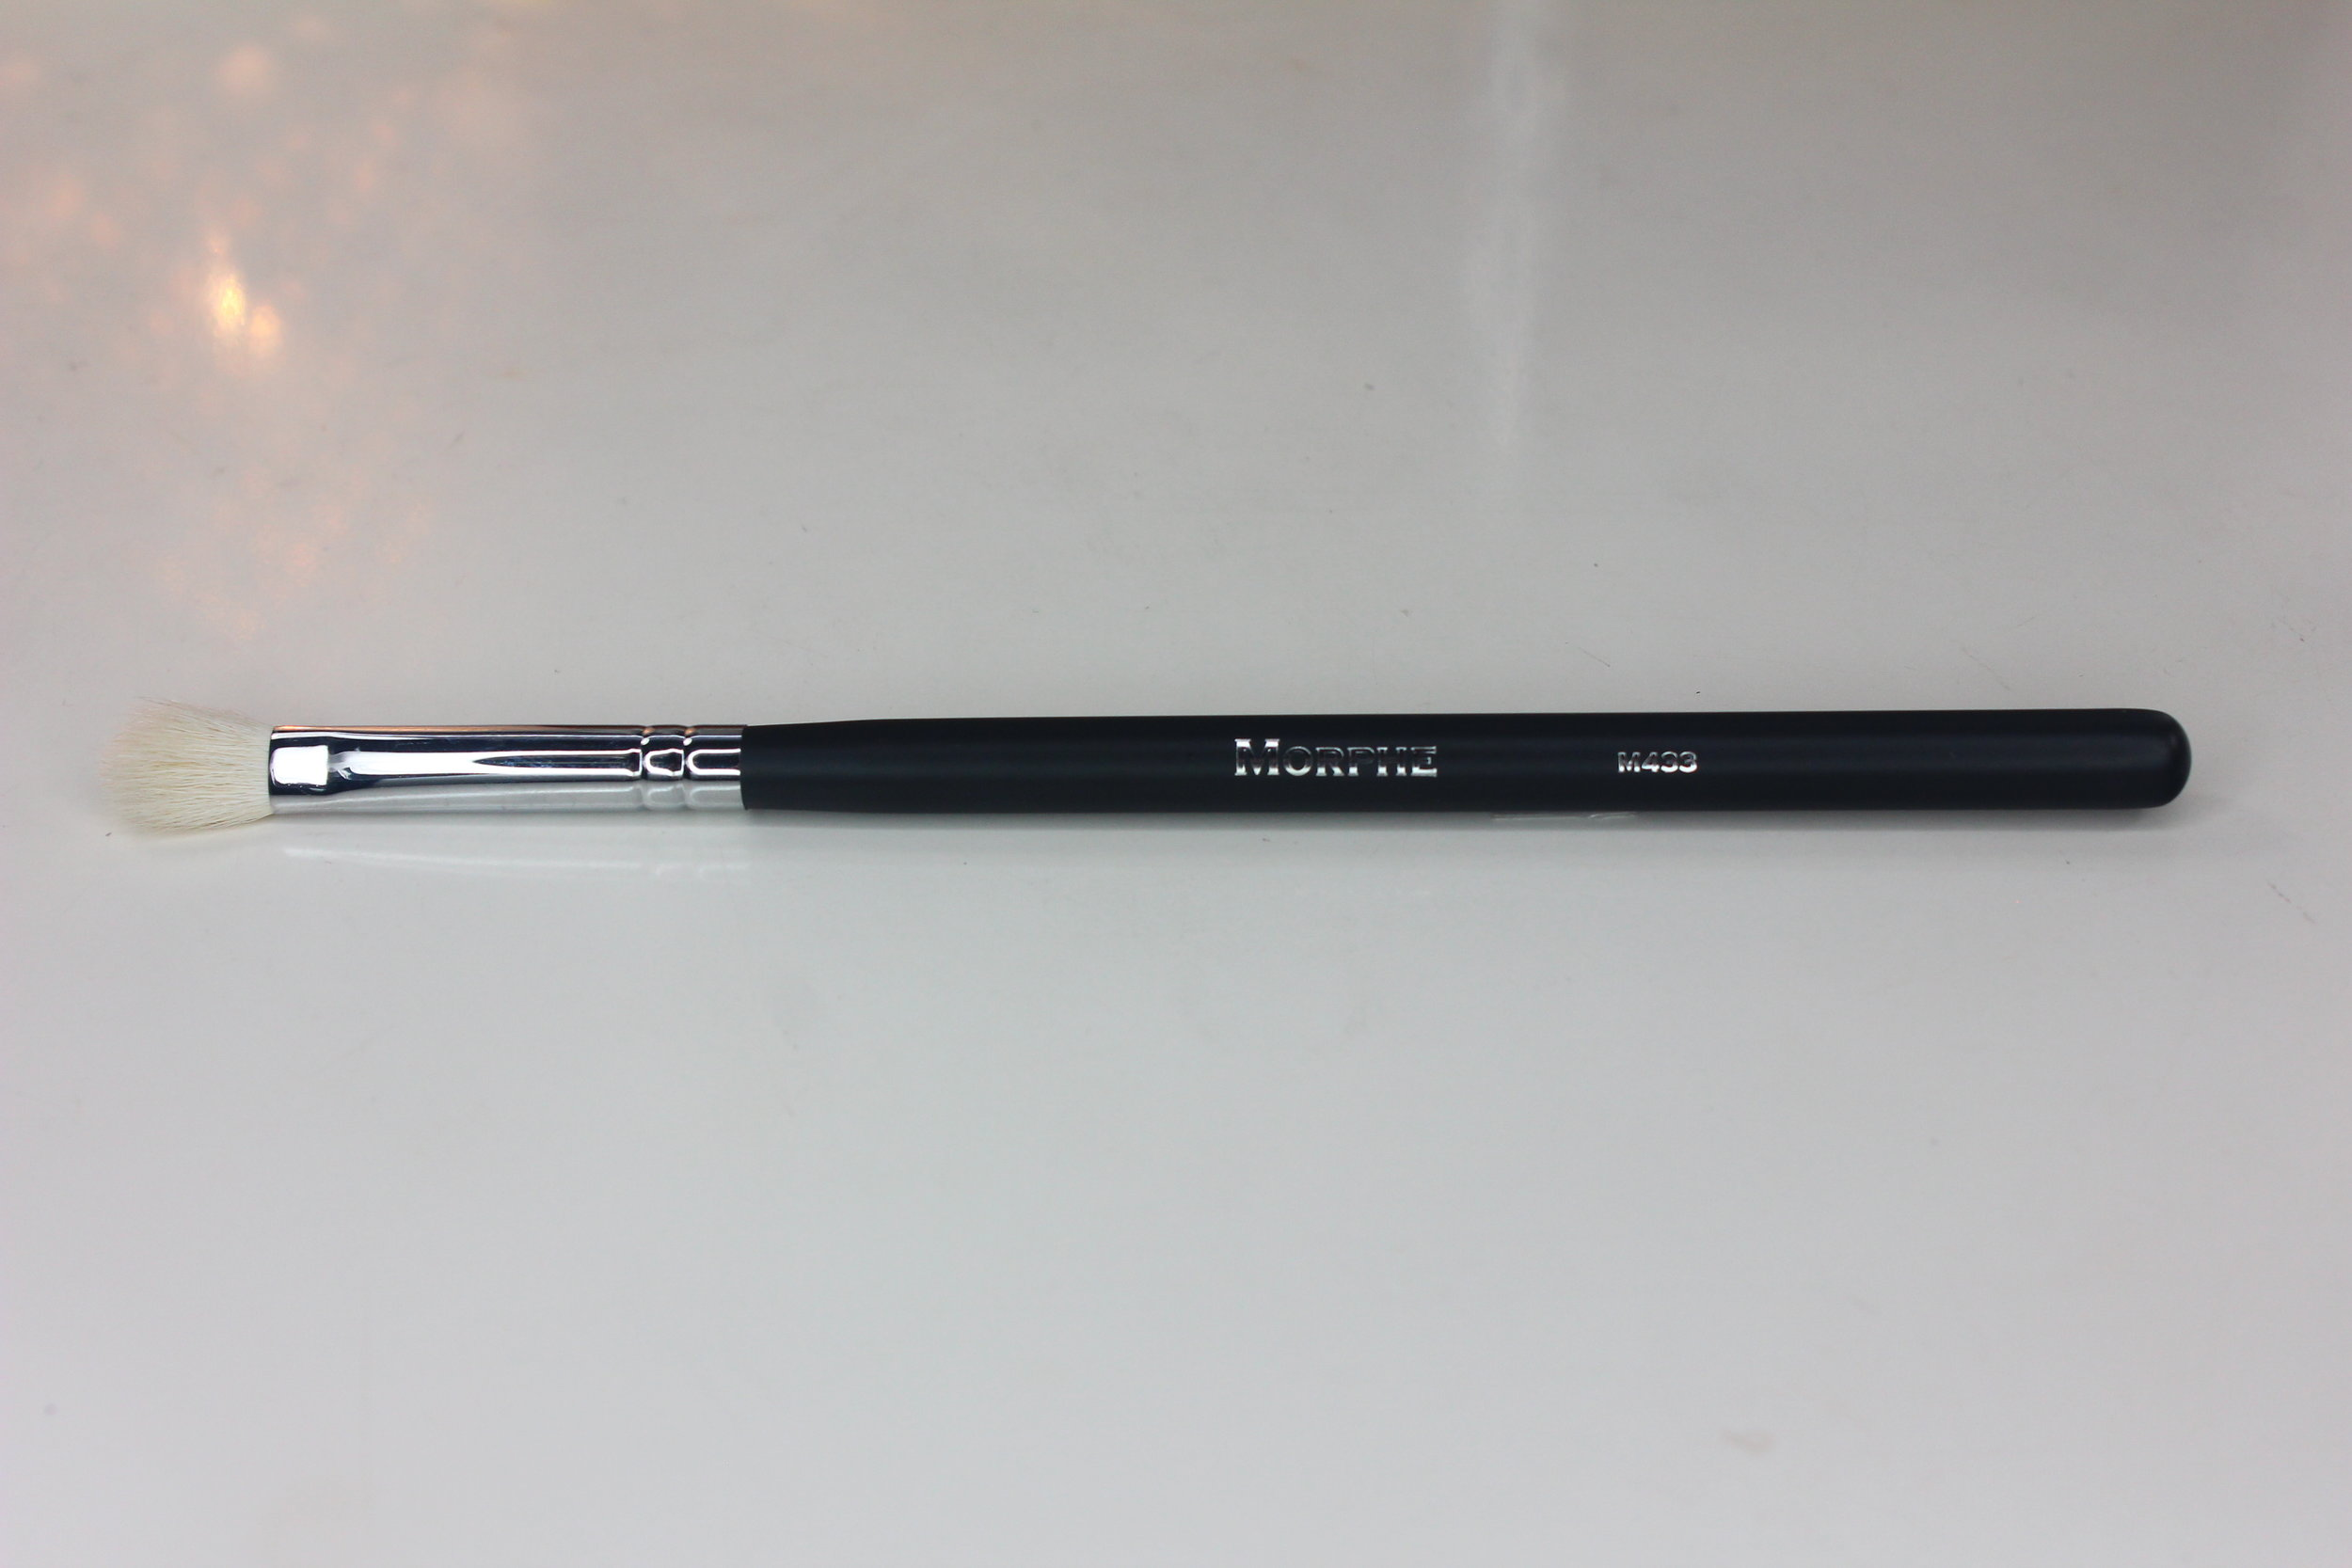 Morphe Brushes 1 - M433 Pro Firm Blending Fluff